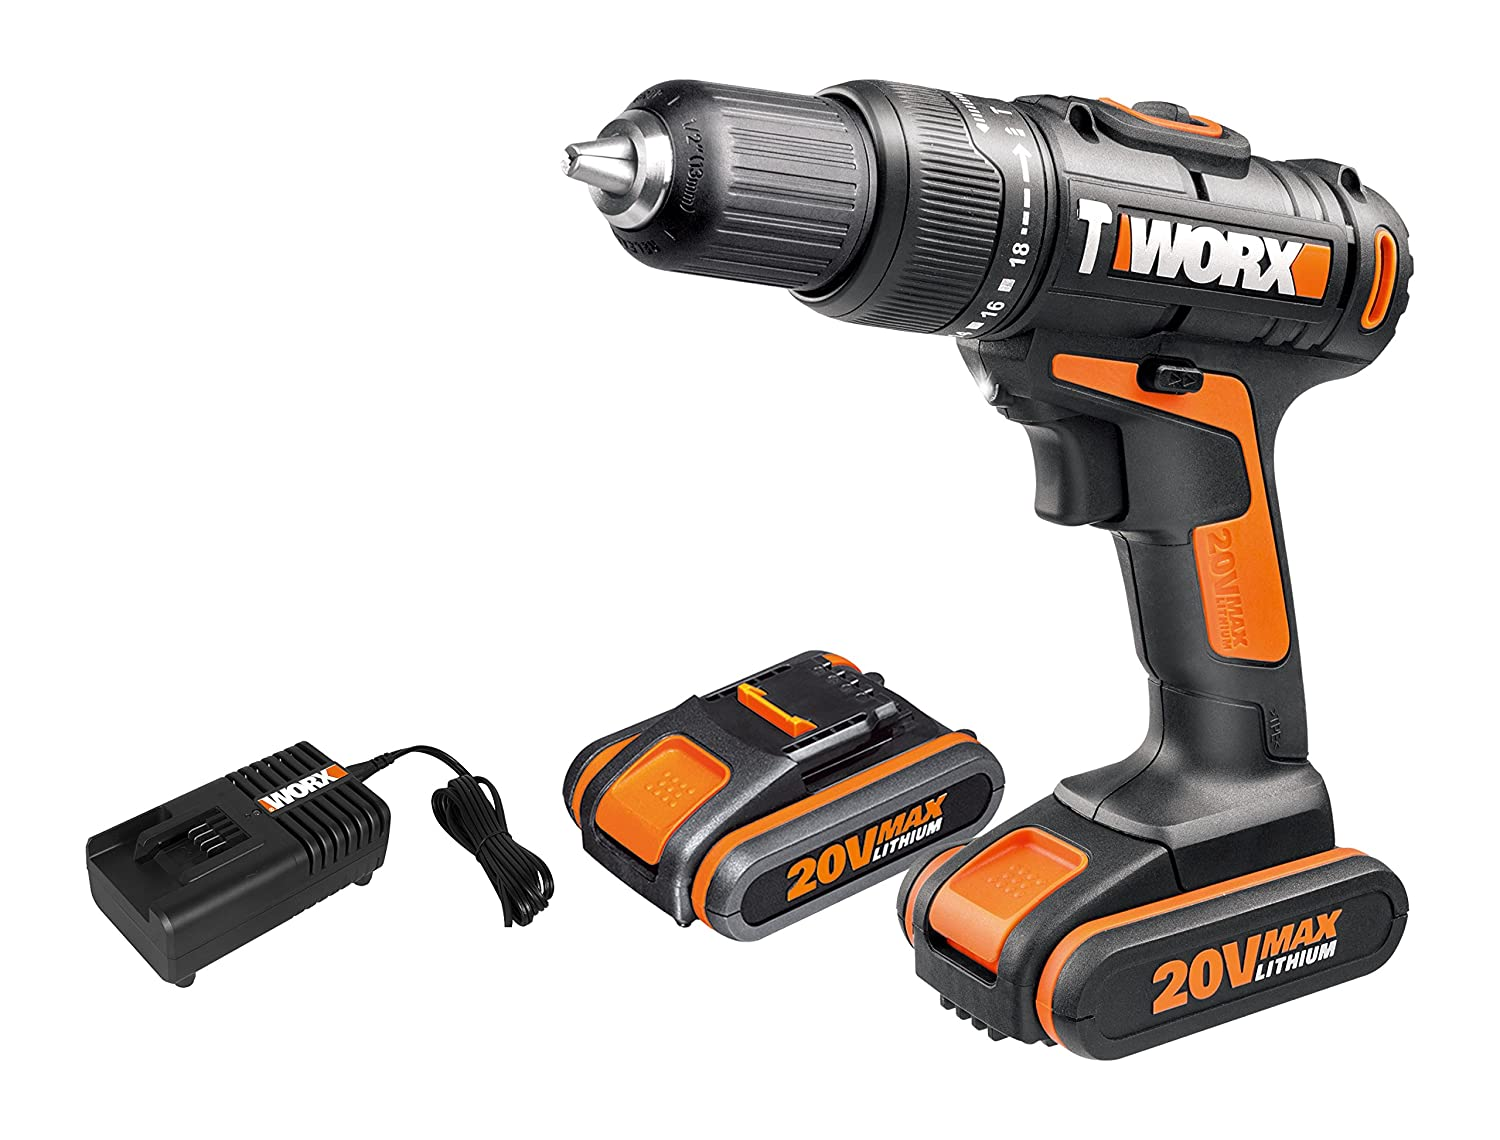 Best Cordless Drill 2020.Worx 20v Cordless Hammer Drill Review 2019 2020